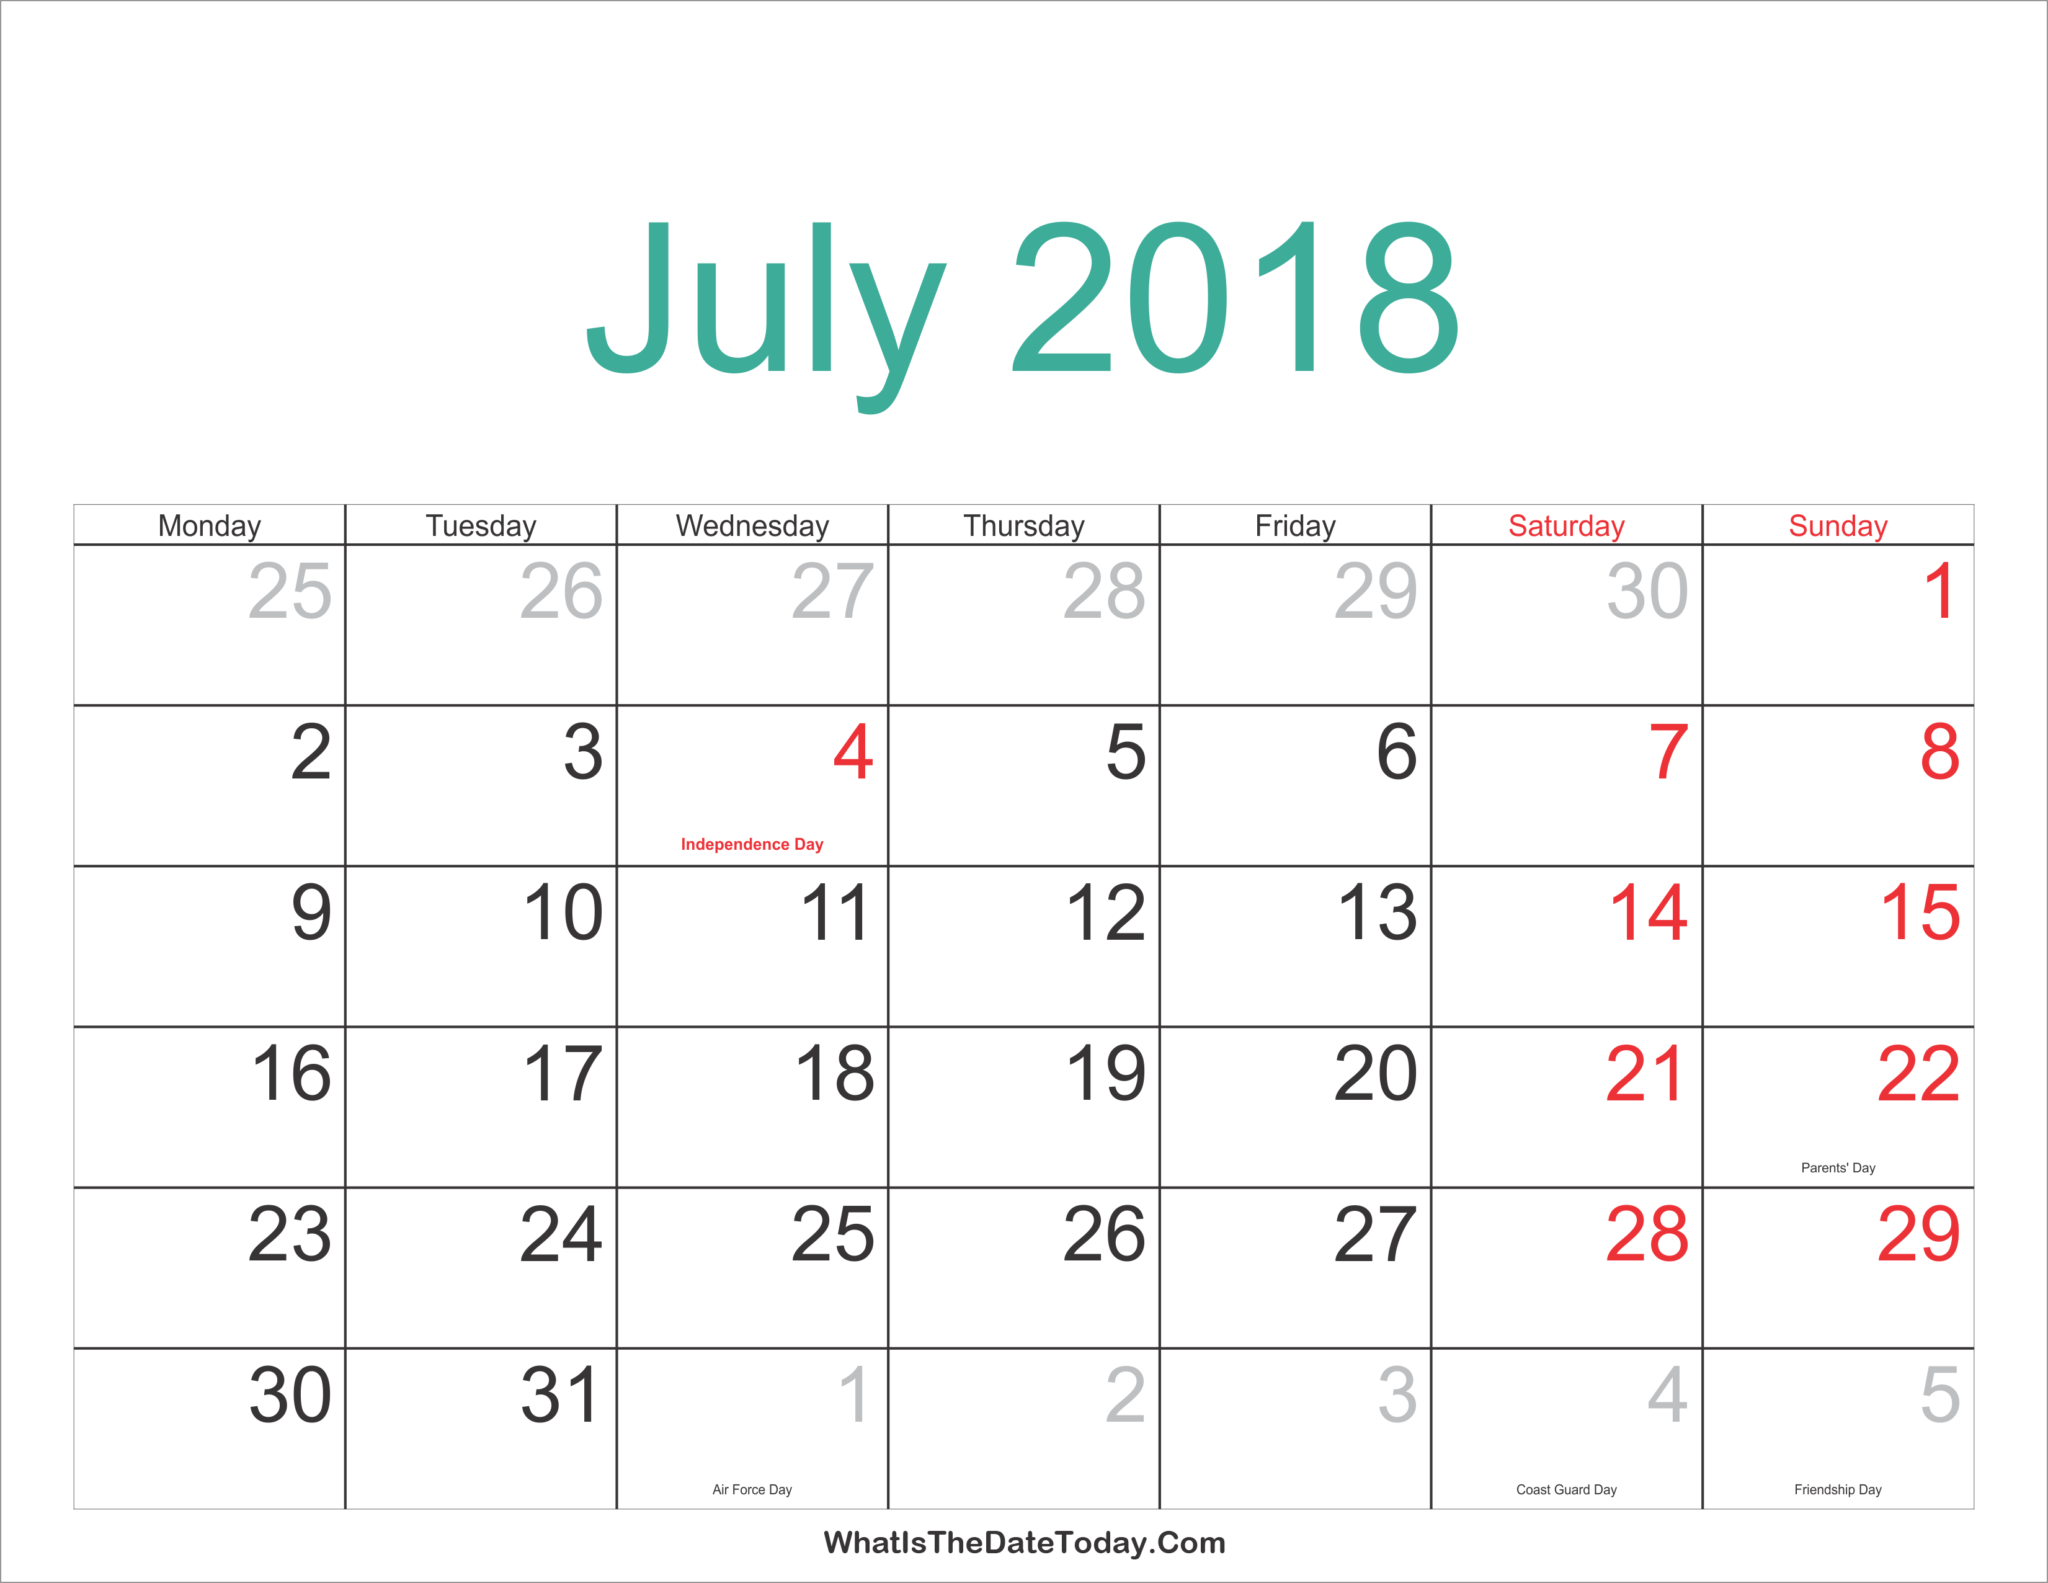 July 2018 Holidays Calendar Printable